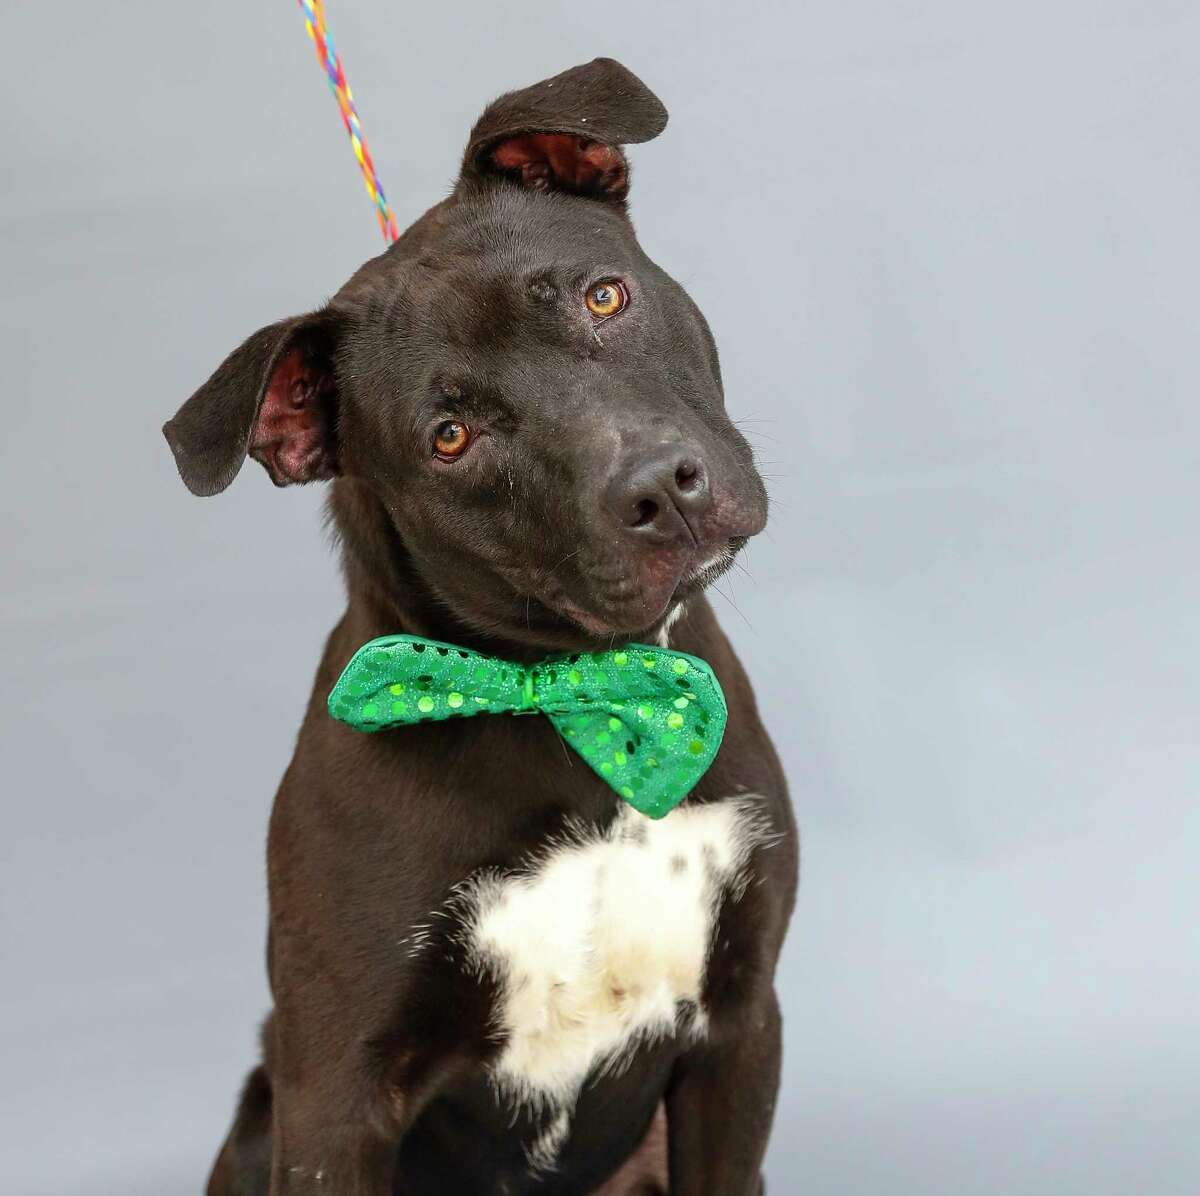 Wally (A571495) is a 1-year-old, male Labrador retriever mix available for adoption from Harris County Pets. Wally's owner was caught on surveillance video last week leaving him tied up at a North Harris County gas station. He was tied to a pole and abandoned. He is a sweet boy.